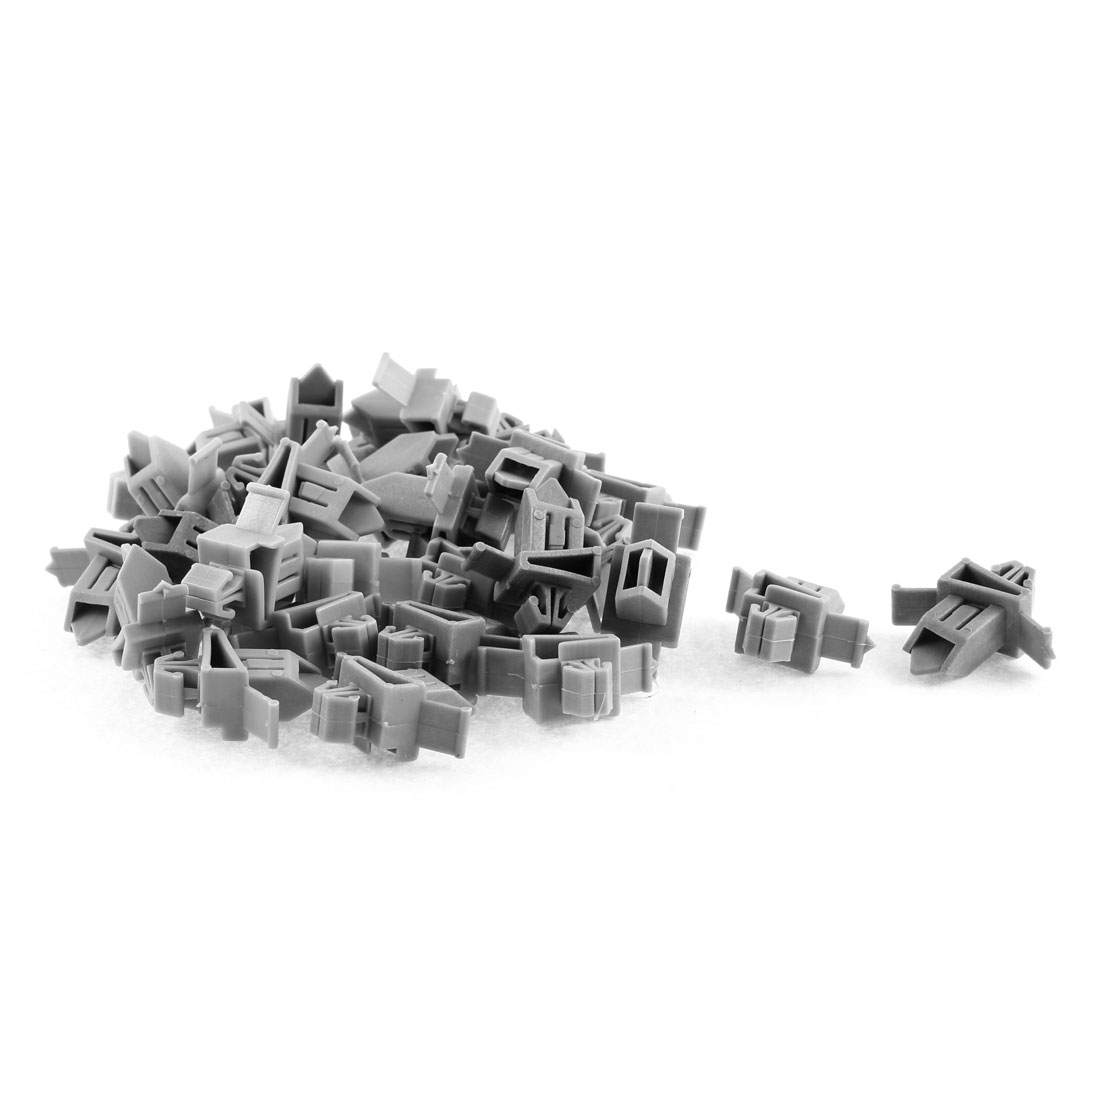 30 Pcs Gray Plastic Rivet Bumper Lining Trim Panel Retainer Fastener Clips for Toyota Prado